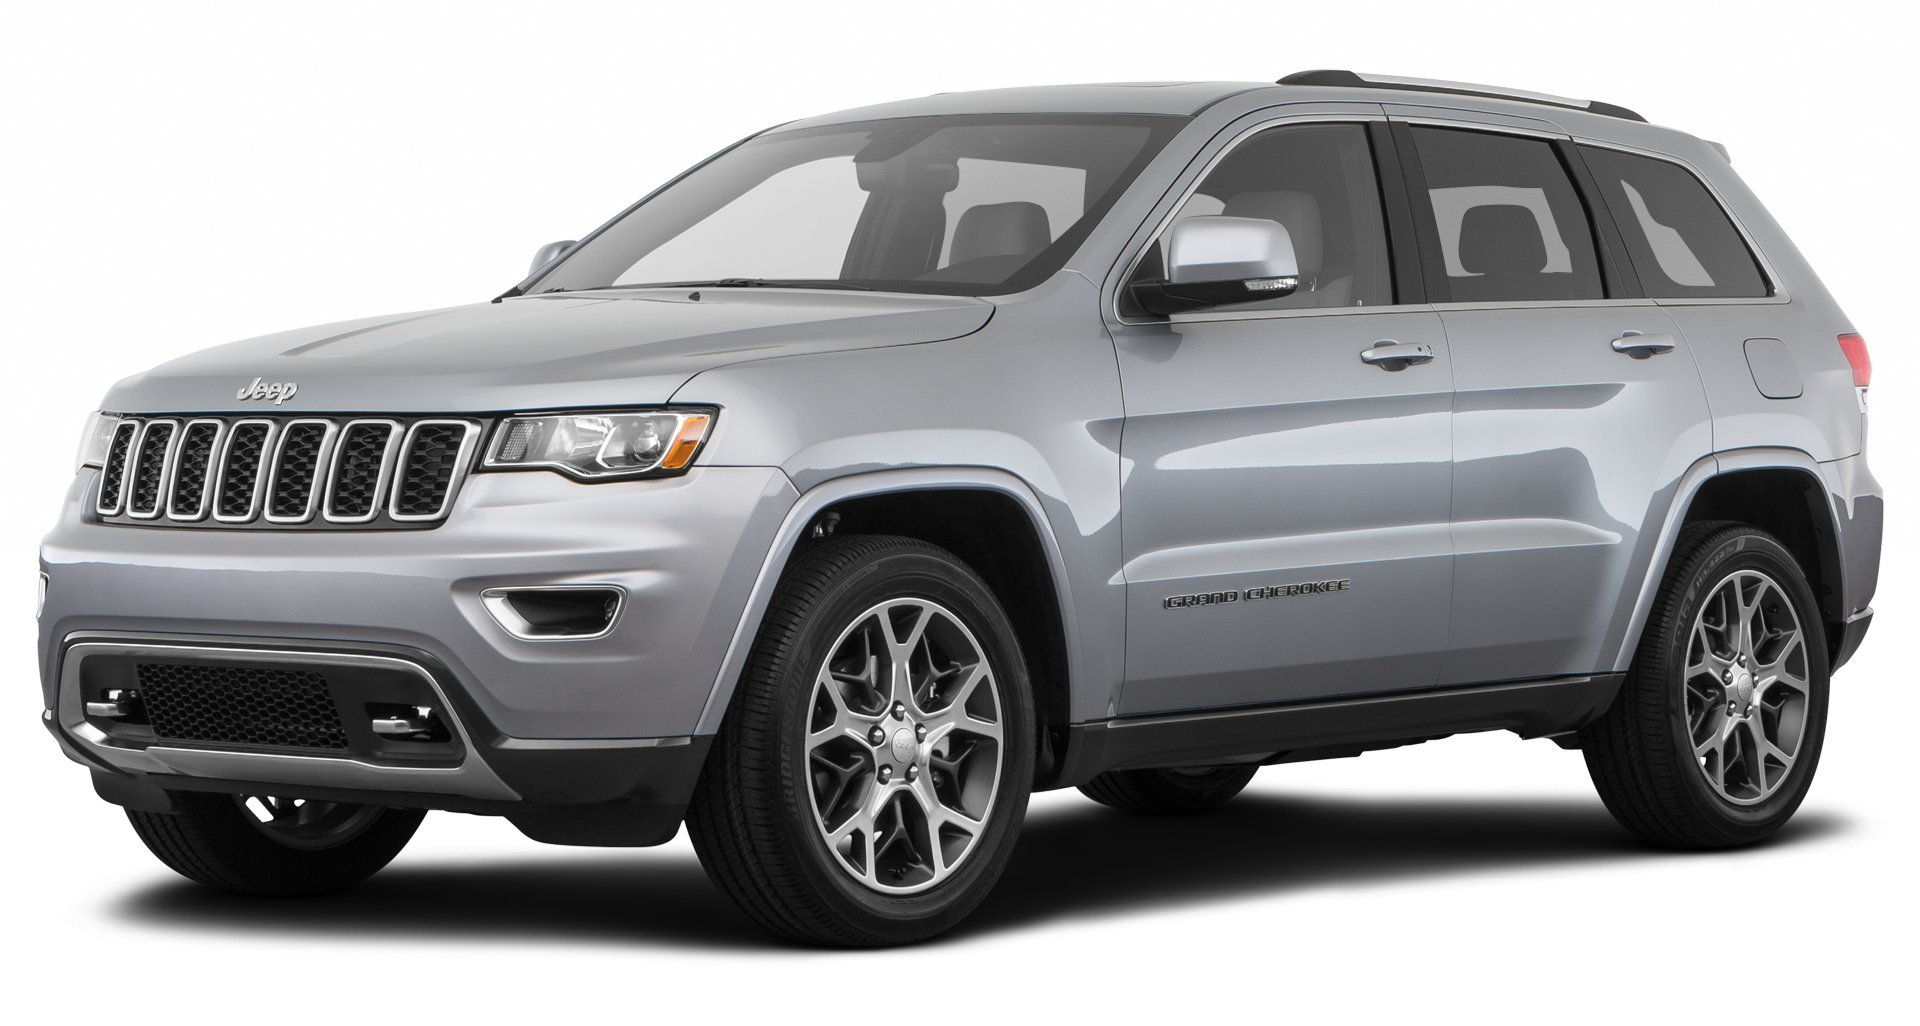 2018 Jeep Grand Cherokee Reviews Images And Specs 2000 Laredo Powertrain Wiring Harness Altitude 4x2